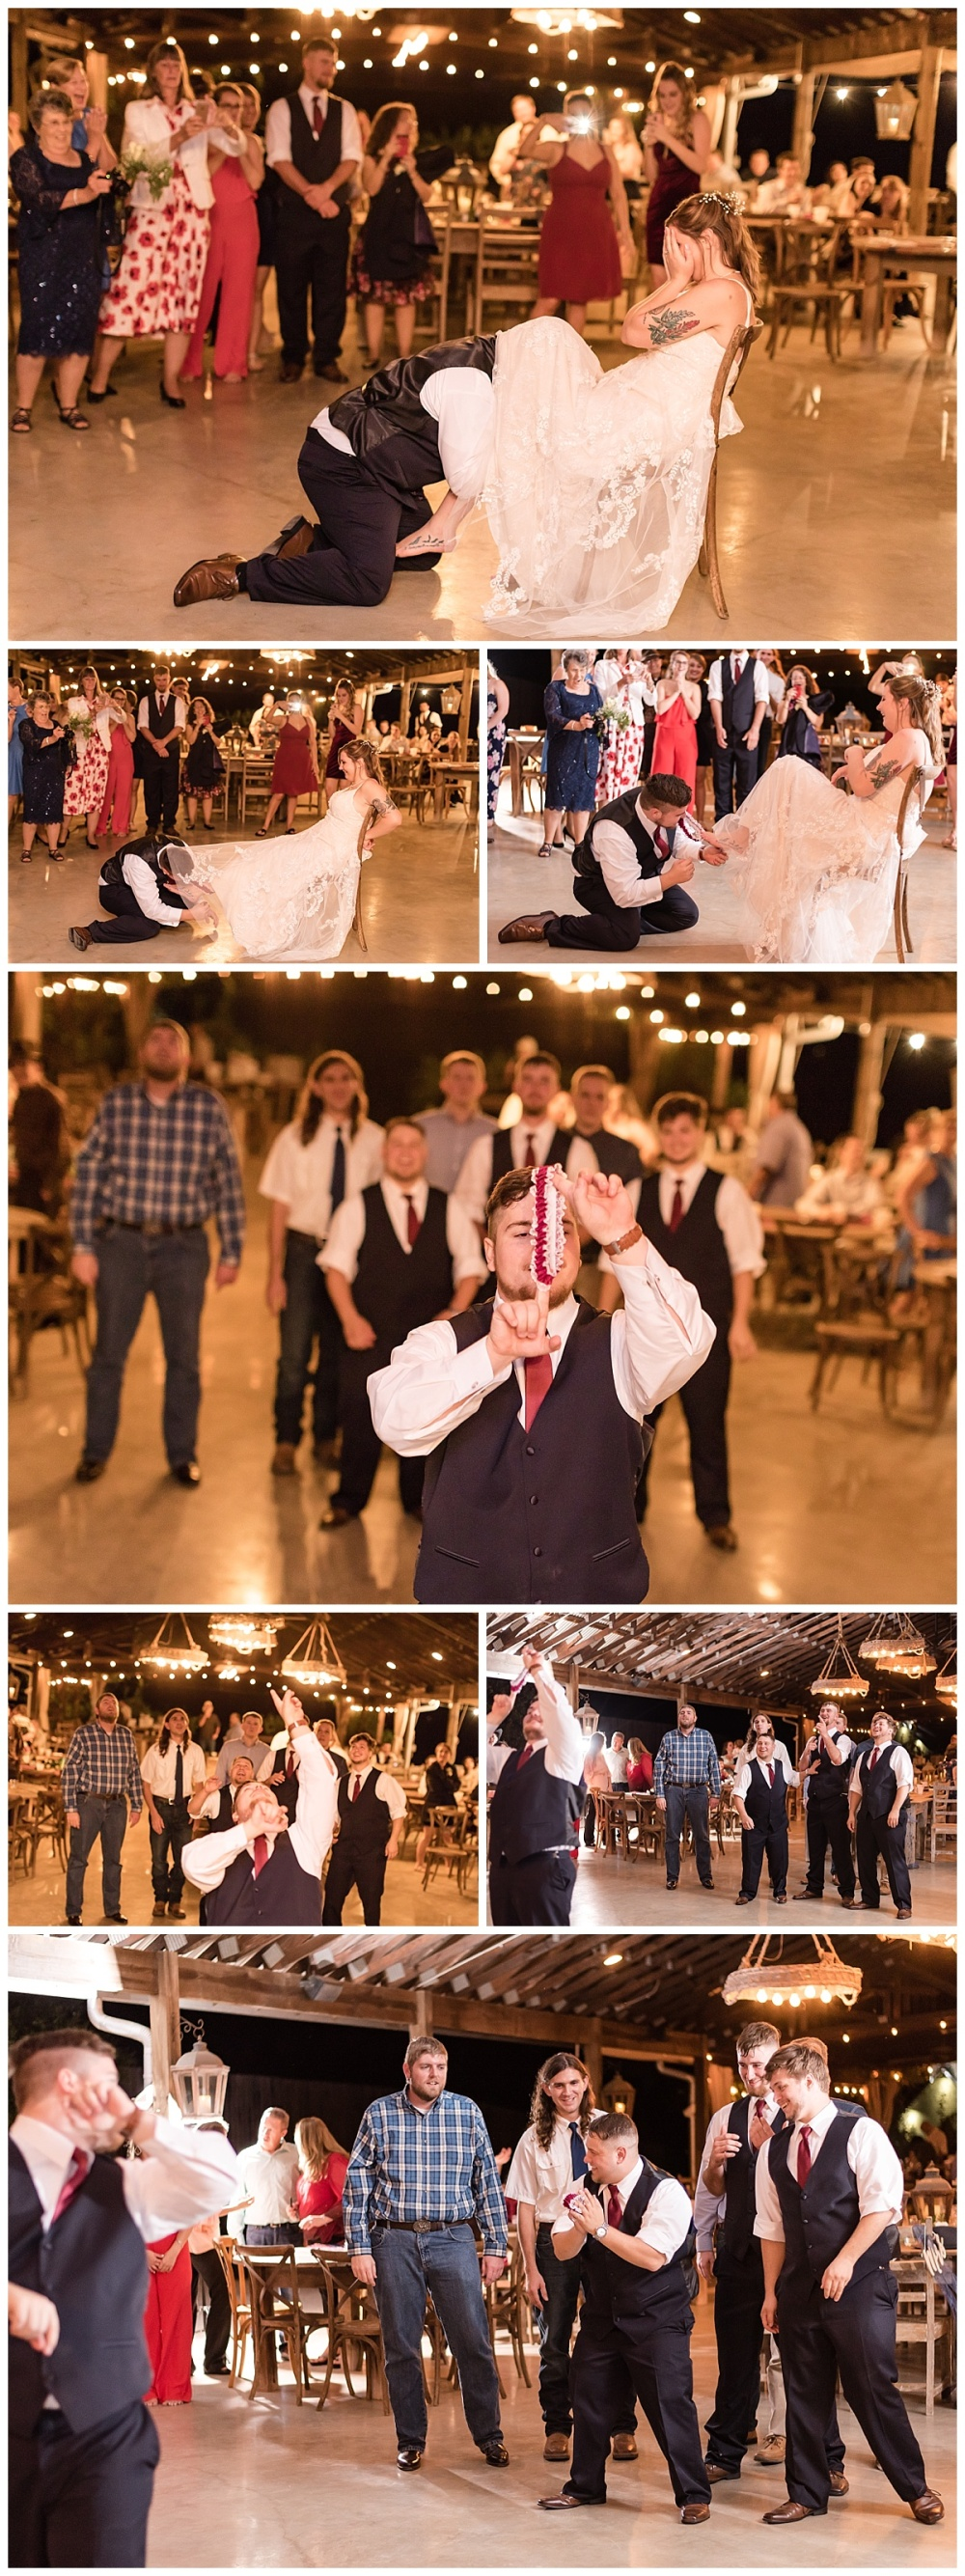 Texas-Wedding-Photographer-Gruene-Estate-Open-Air-Chapel-Carly-Barton-Photography-Katie-Nic_0091.jpg